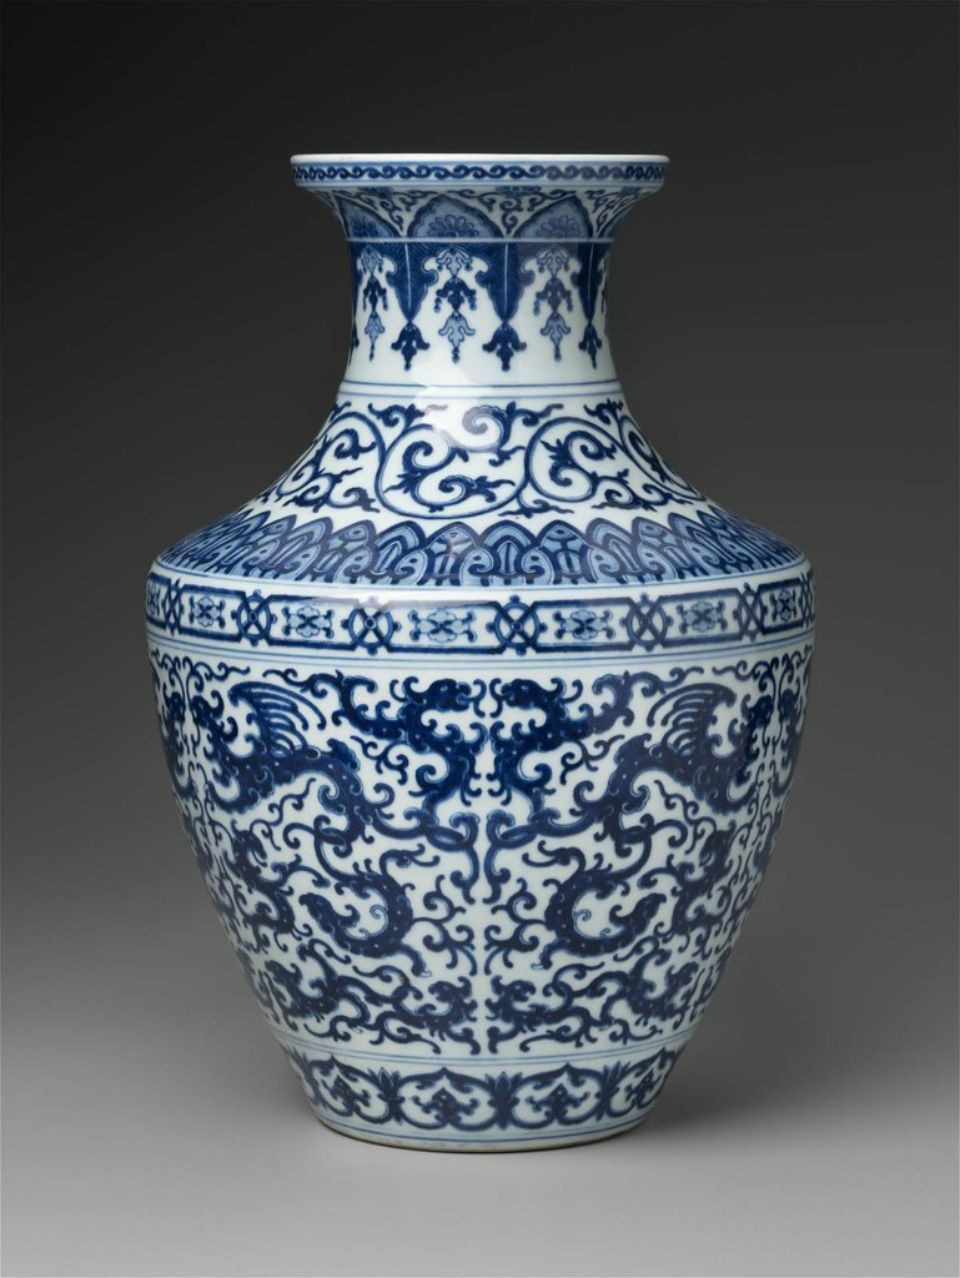 ming dynasty vase for sale of vase with blue white phoenix winged dragons chinese qing for vase with blue white phoenix winged dragons chinese qing dynasty qianlong period 1736 95 porcelain